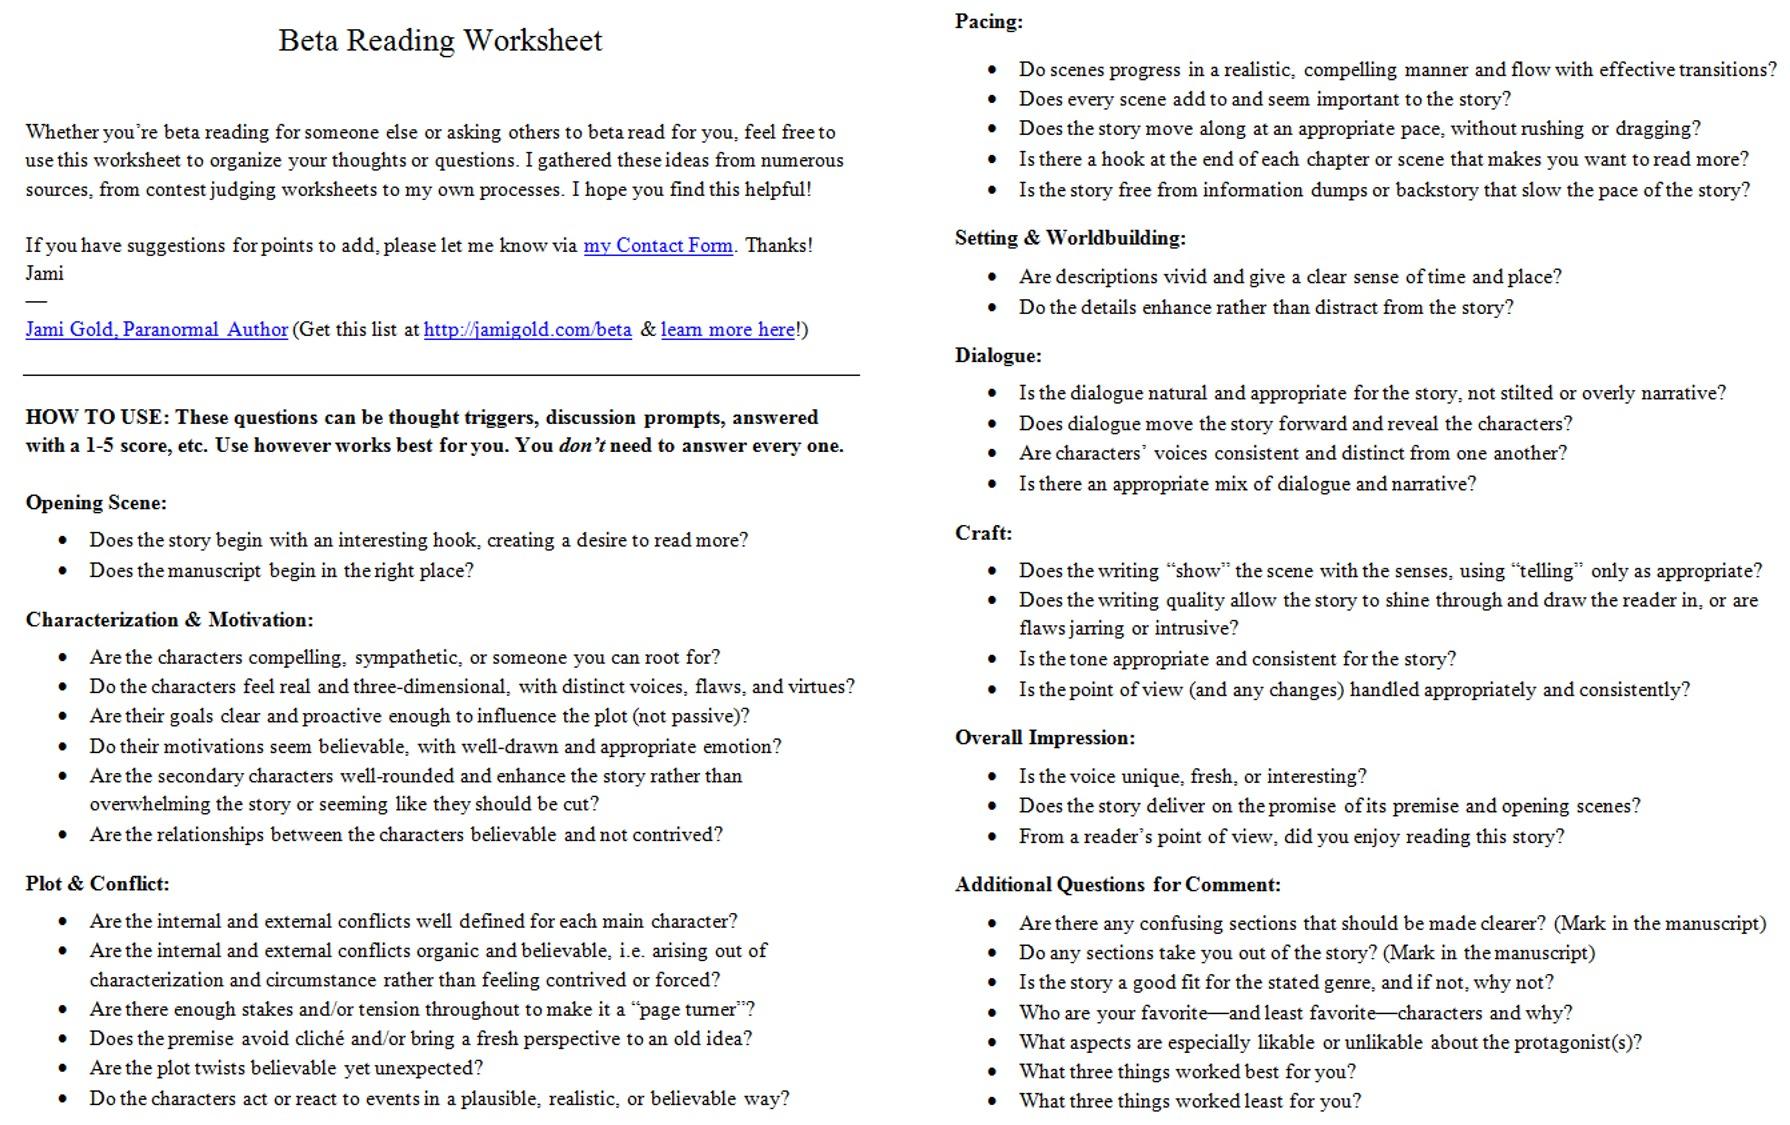 Aldiablosus  Pleasant Worksheets For Writers  Jami Gold Paranormal Author With Likable Screen Shot Of The Twopage Beta Reading Worksheet With Lovely Molecular Biology Of The Gene Chapter  Worksheet Answers Also Wwii Worksheets In Addition Occupation Worksheets For Kindergarten And Community Service Worksheet As Well As Mla Citation Practice Worksheet Additionally Pre K Winter Worksheets From Jamigoldcom With Aldiablosus  Likable Worksheets For Writers  Jami Gold Paranormal Author With Lovely Screen Shot Of The Twopage Beta Reading Worksheet And Pleasant Molecular Biology Of The Gene Chapter  Worksheet Answers Also Wwii Worksheets In Addition Occupation Worksheets For Kindergarten From Jamigoldcom